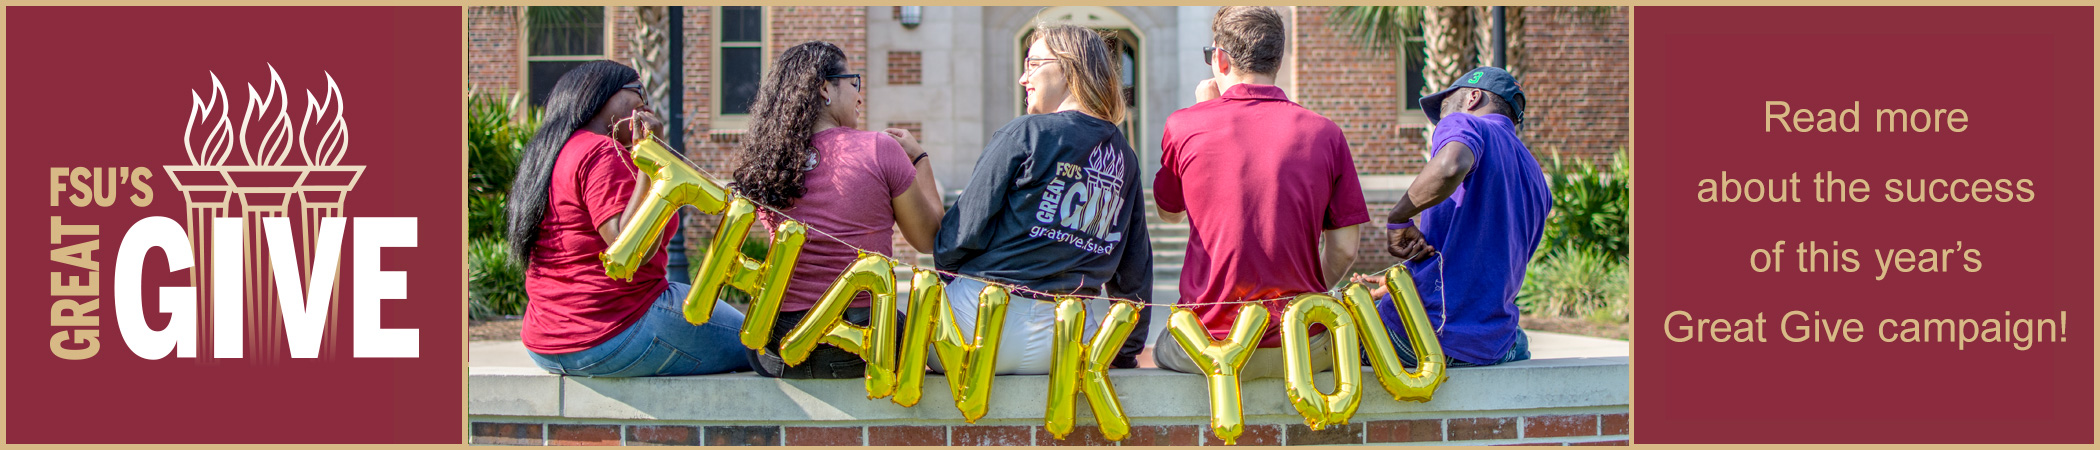 FSU's Great Give is a 36-hour online fundraising campaign